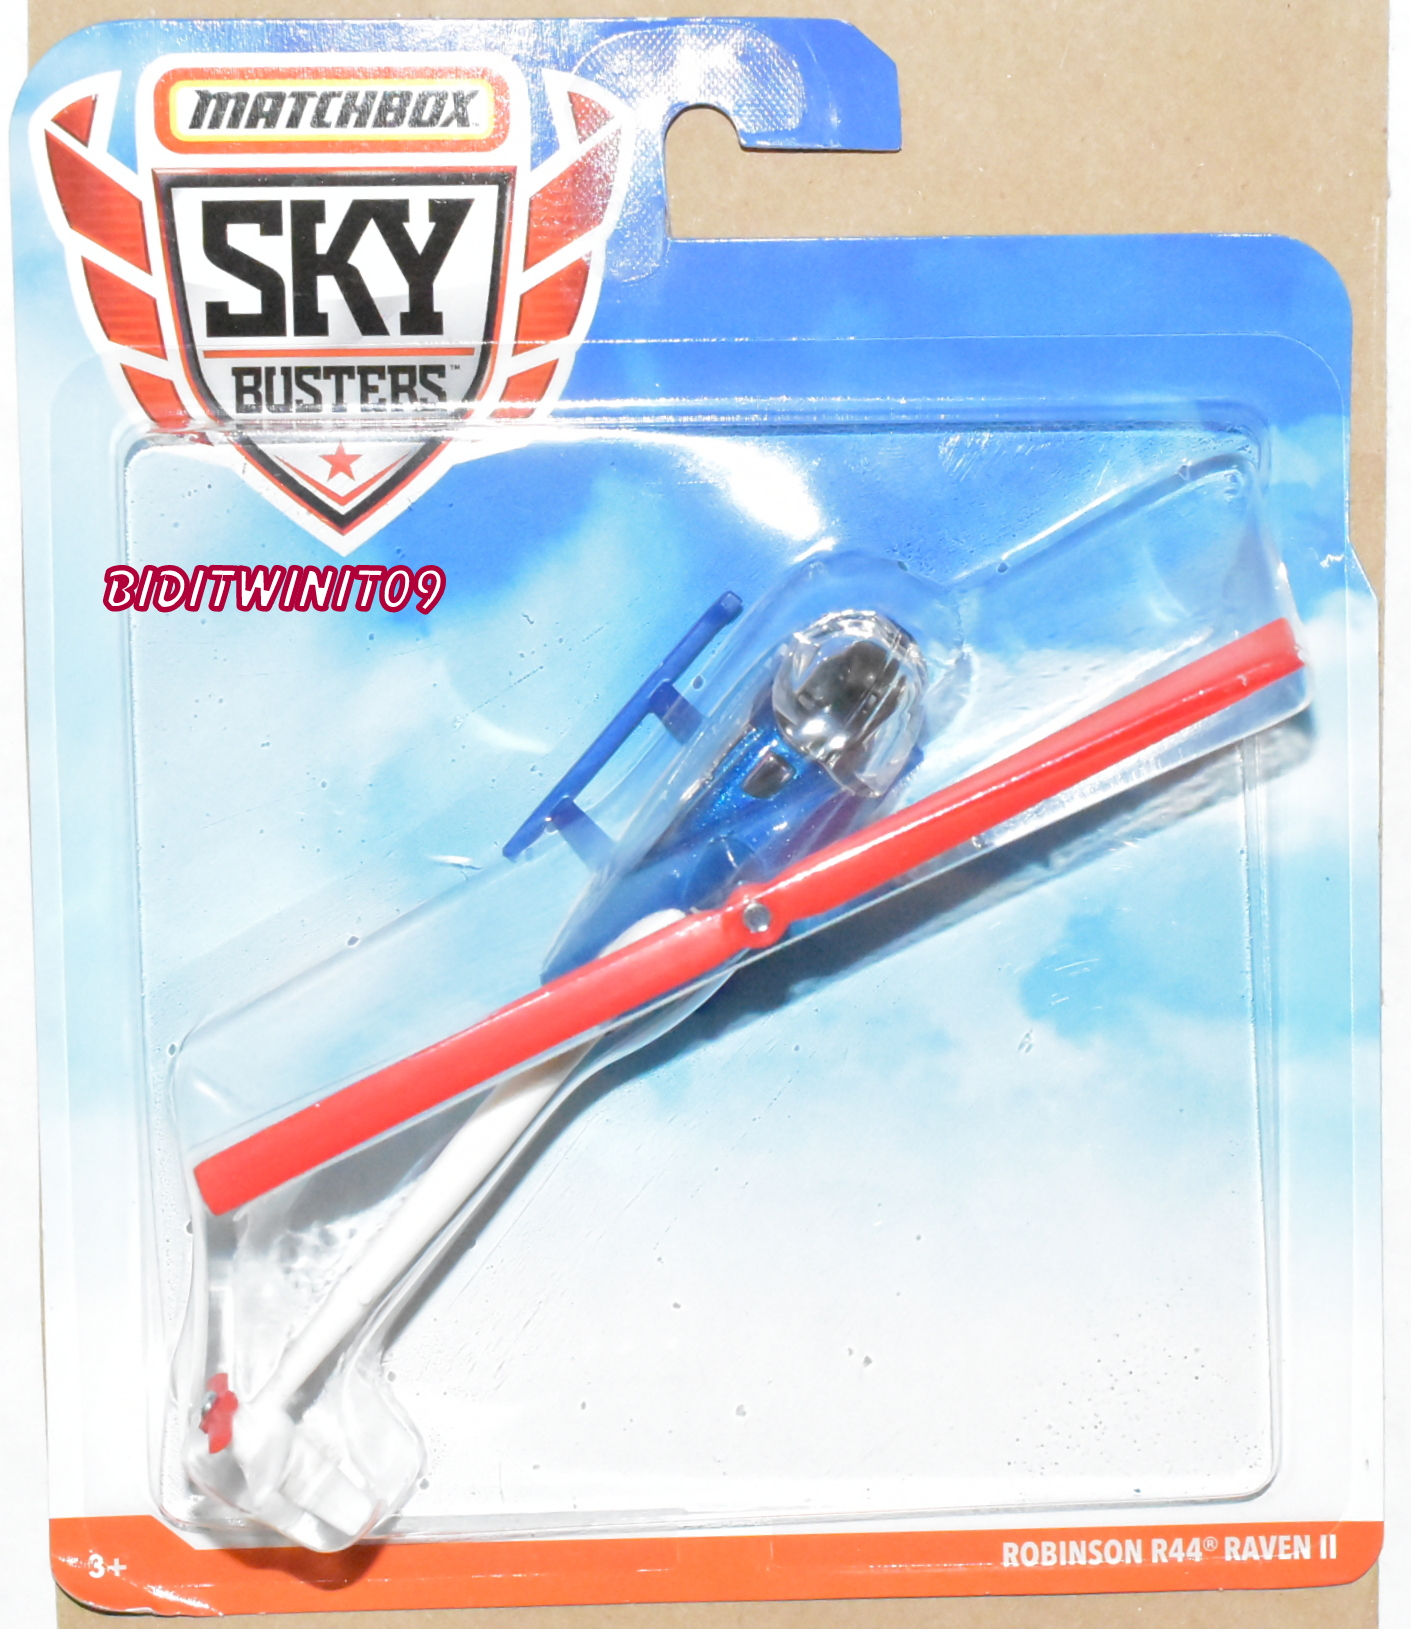 MATCHBOX SKY BUSTERS ROBINSON R44 RAVEN II BLUE